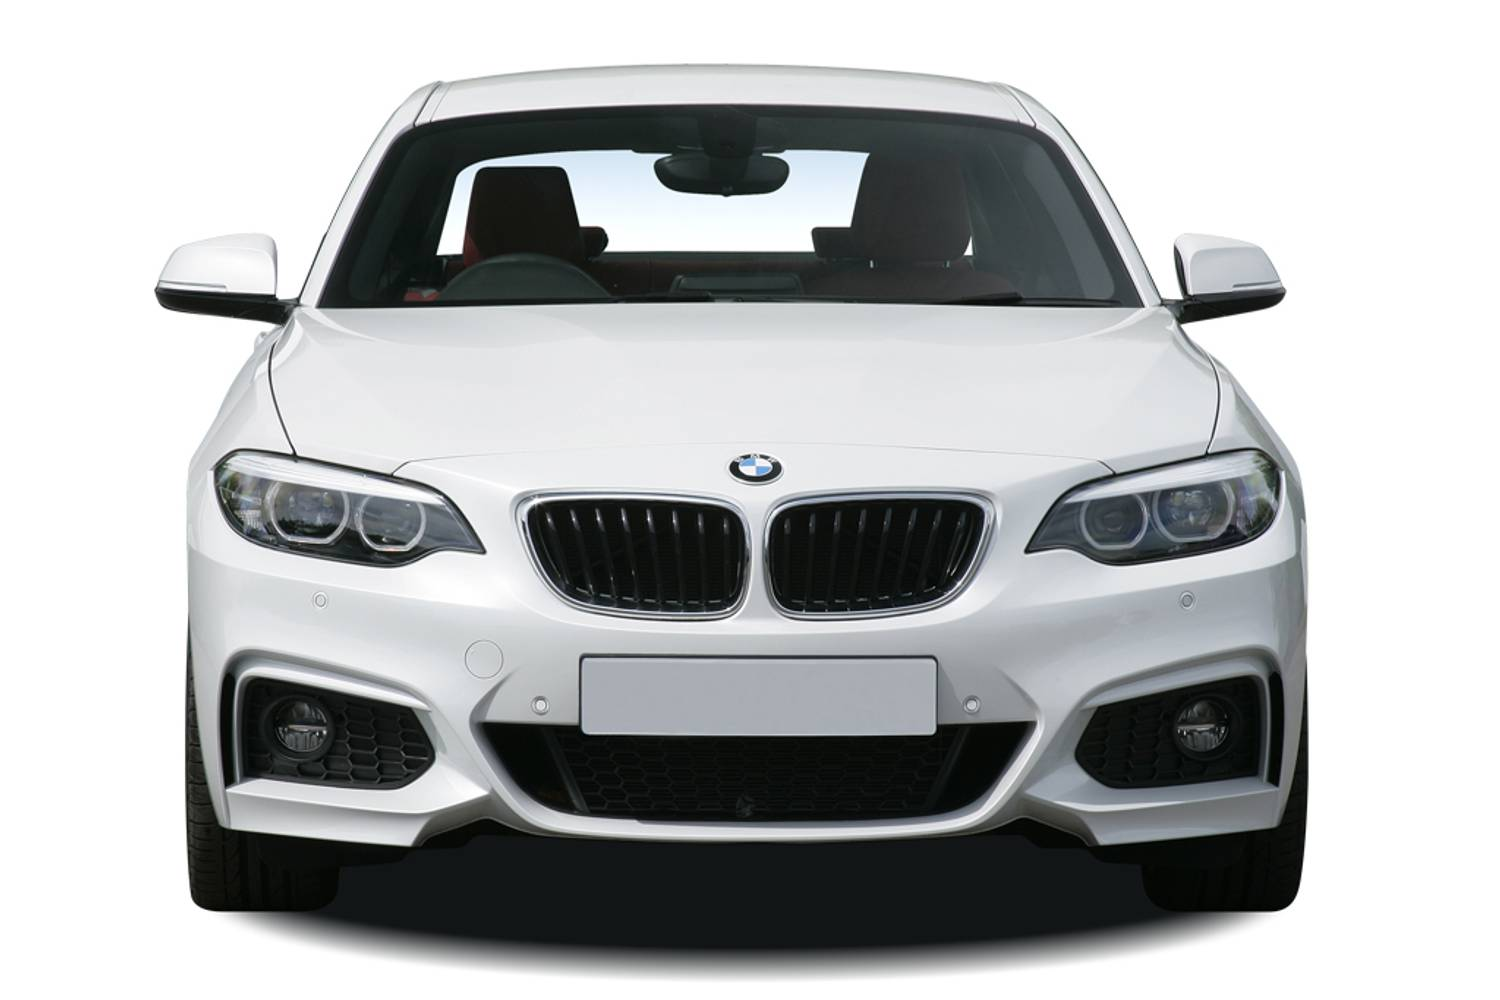 BMW 2 Series Coupe 2dr [Nav] Front